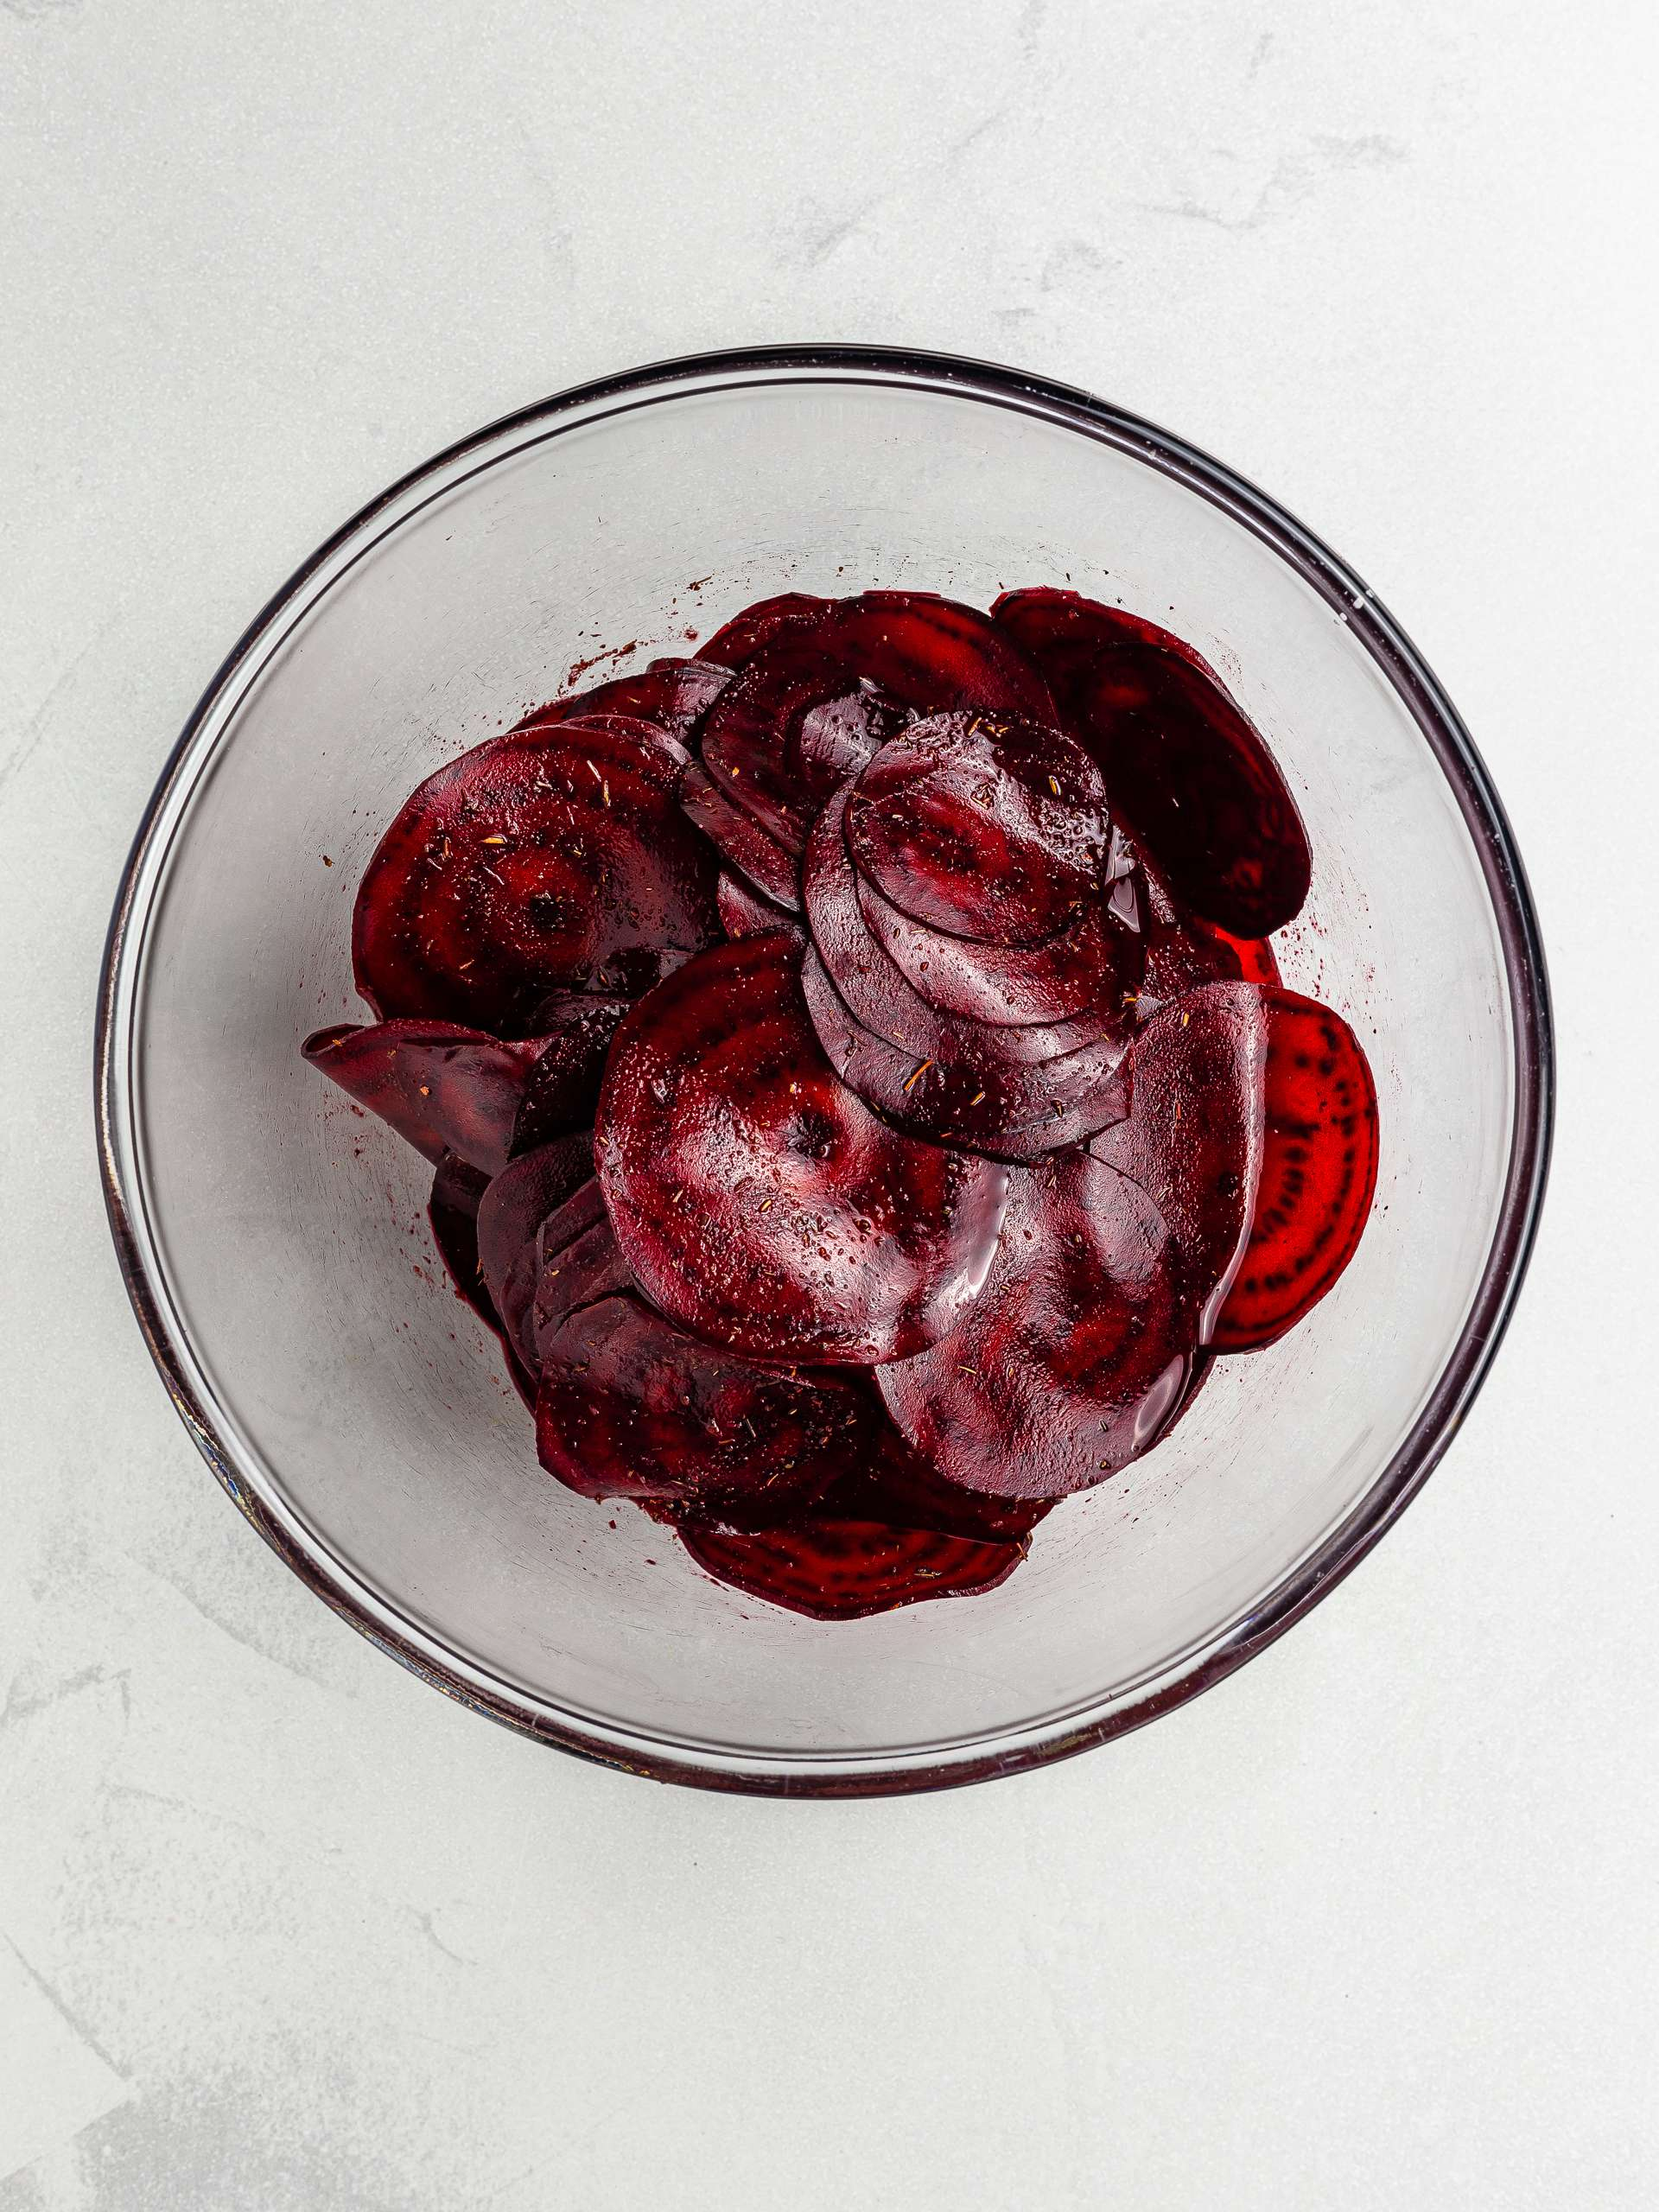 beetroot chips seasoned with thyme salt